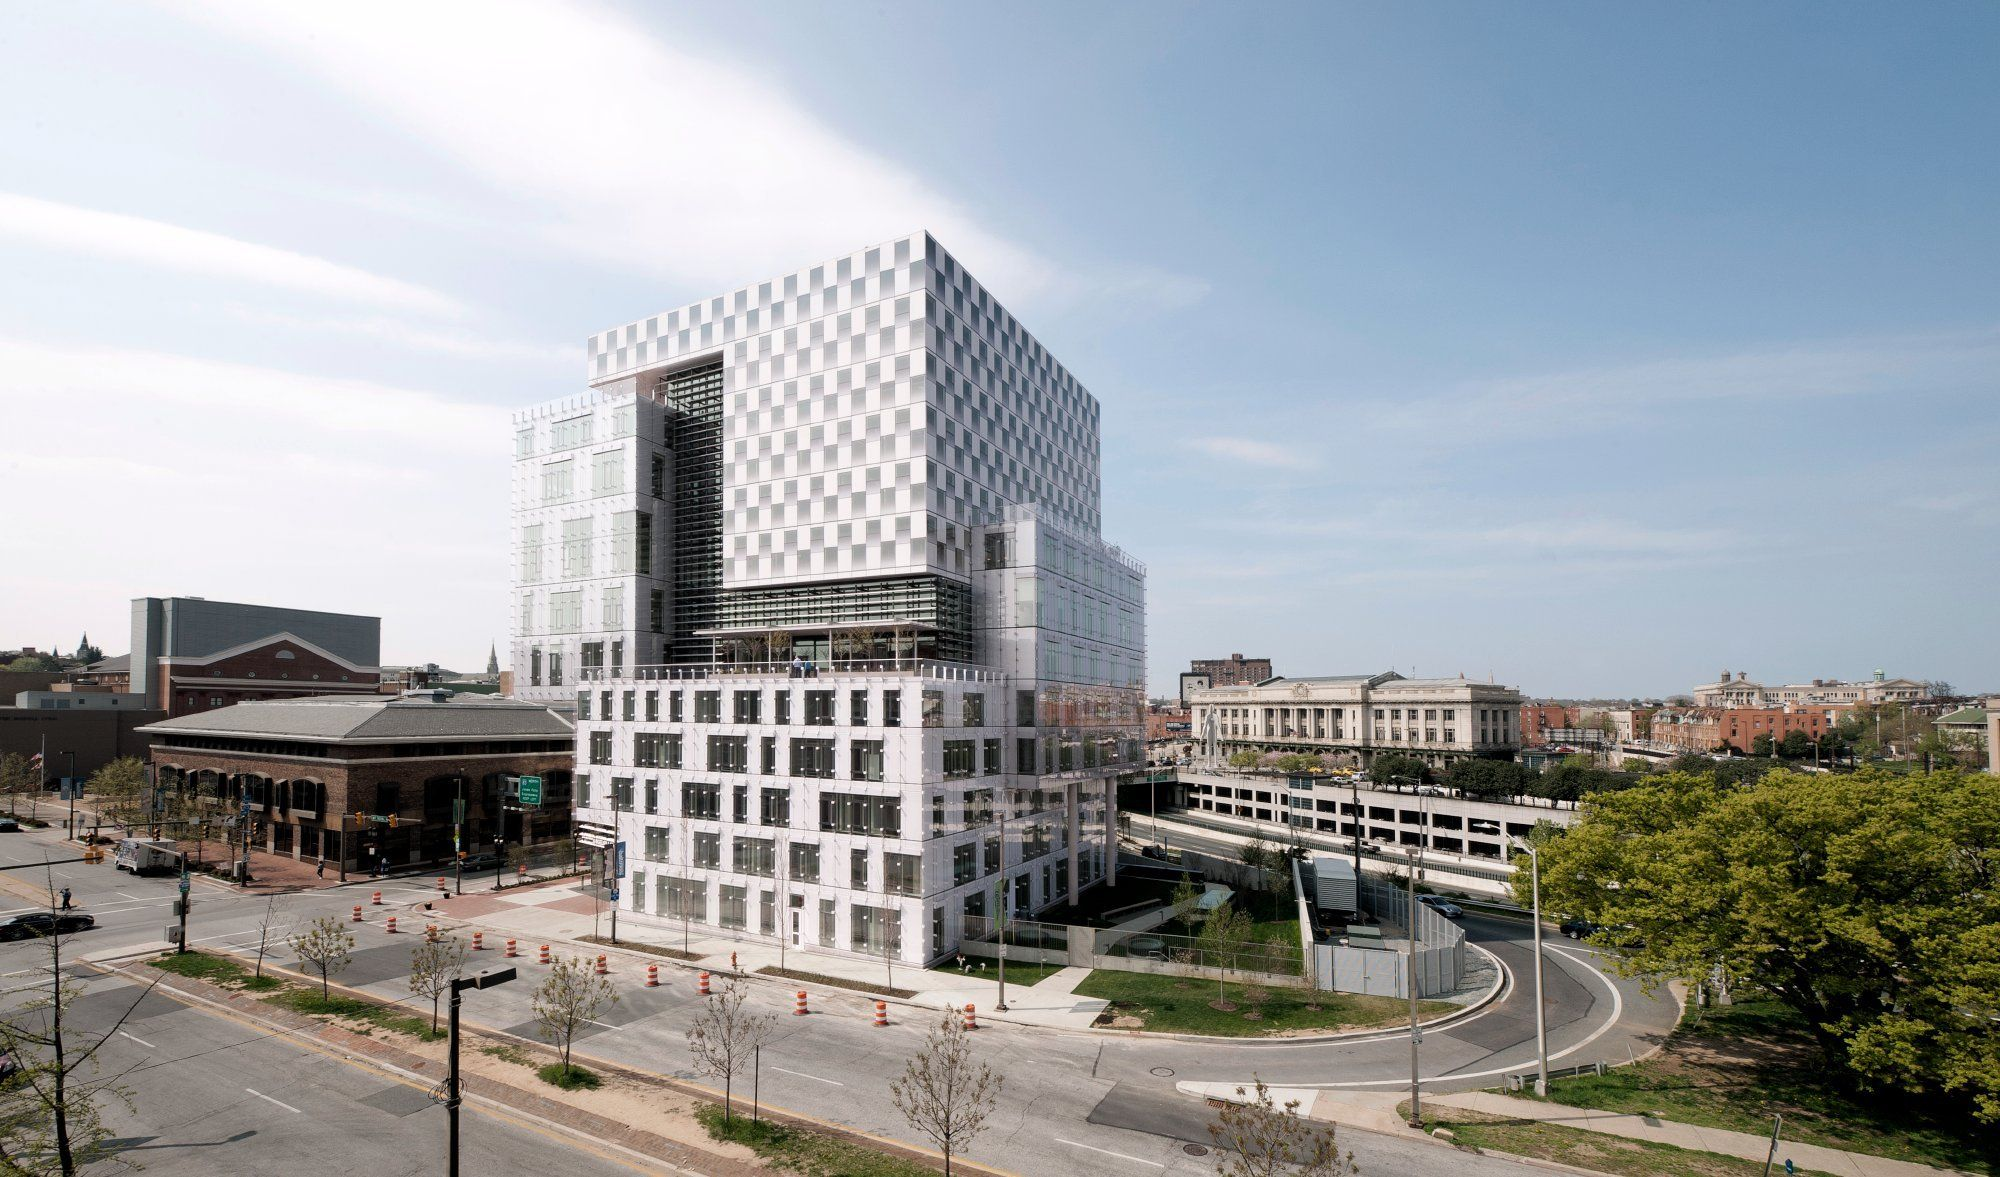 Akademisch und sozial jurafakult t in baltimore von - University of maryland interior design ...